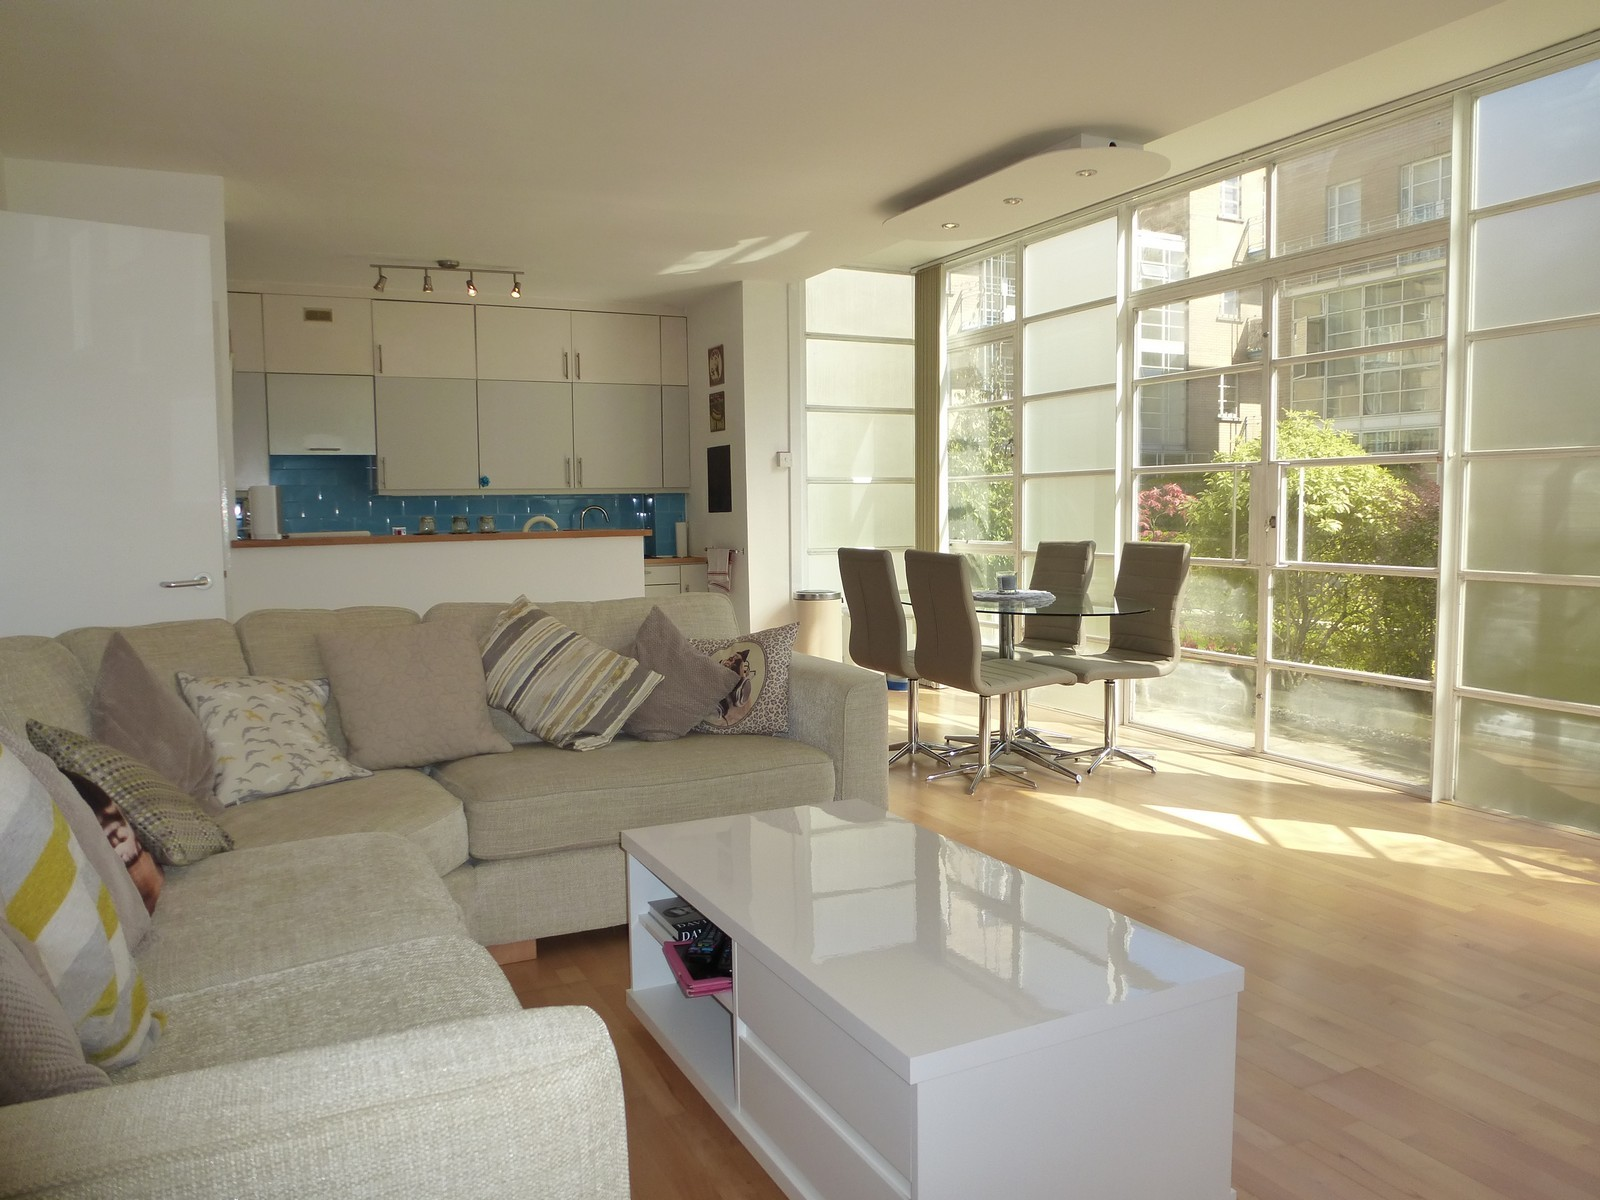 2 Bedroom Flat To Rent The Watergardens London E E14 8by